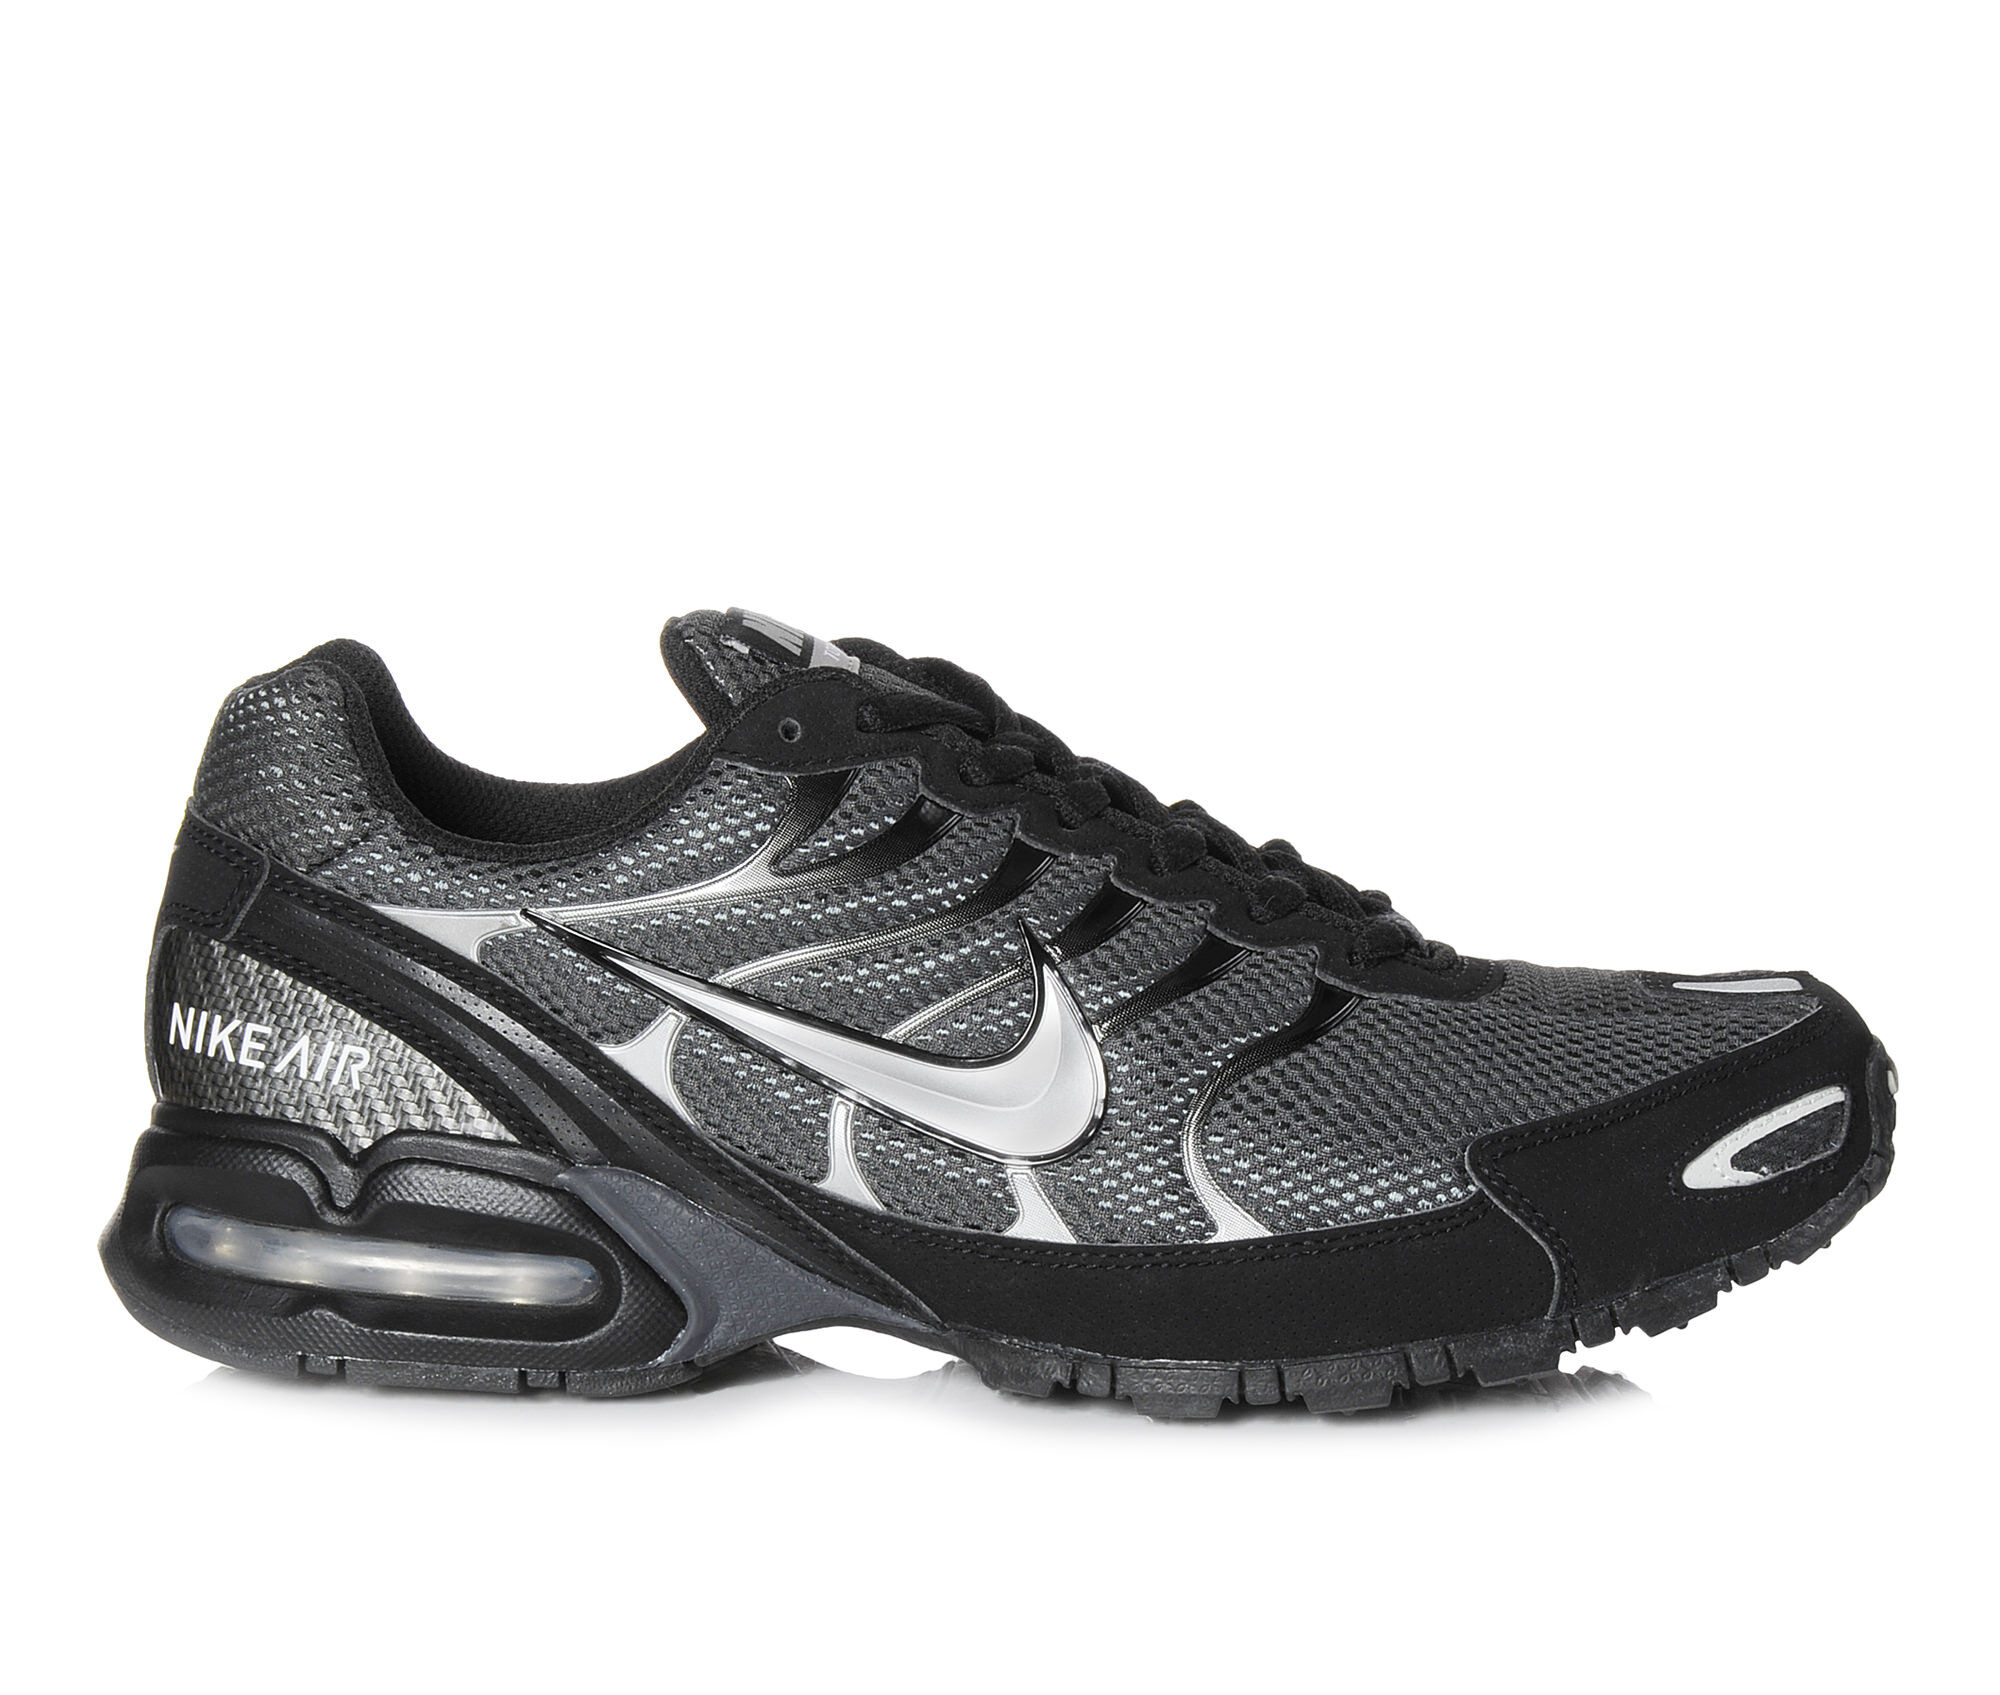 Men's Nike Air Max Torch 4 Running Shoes